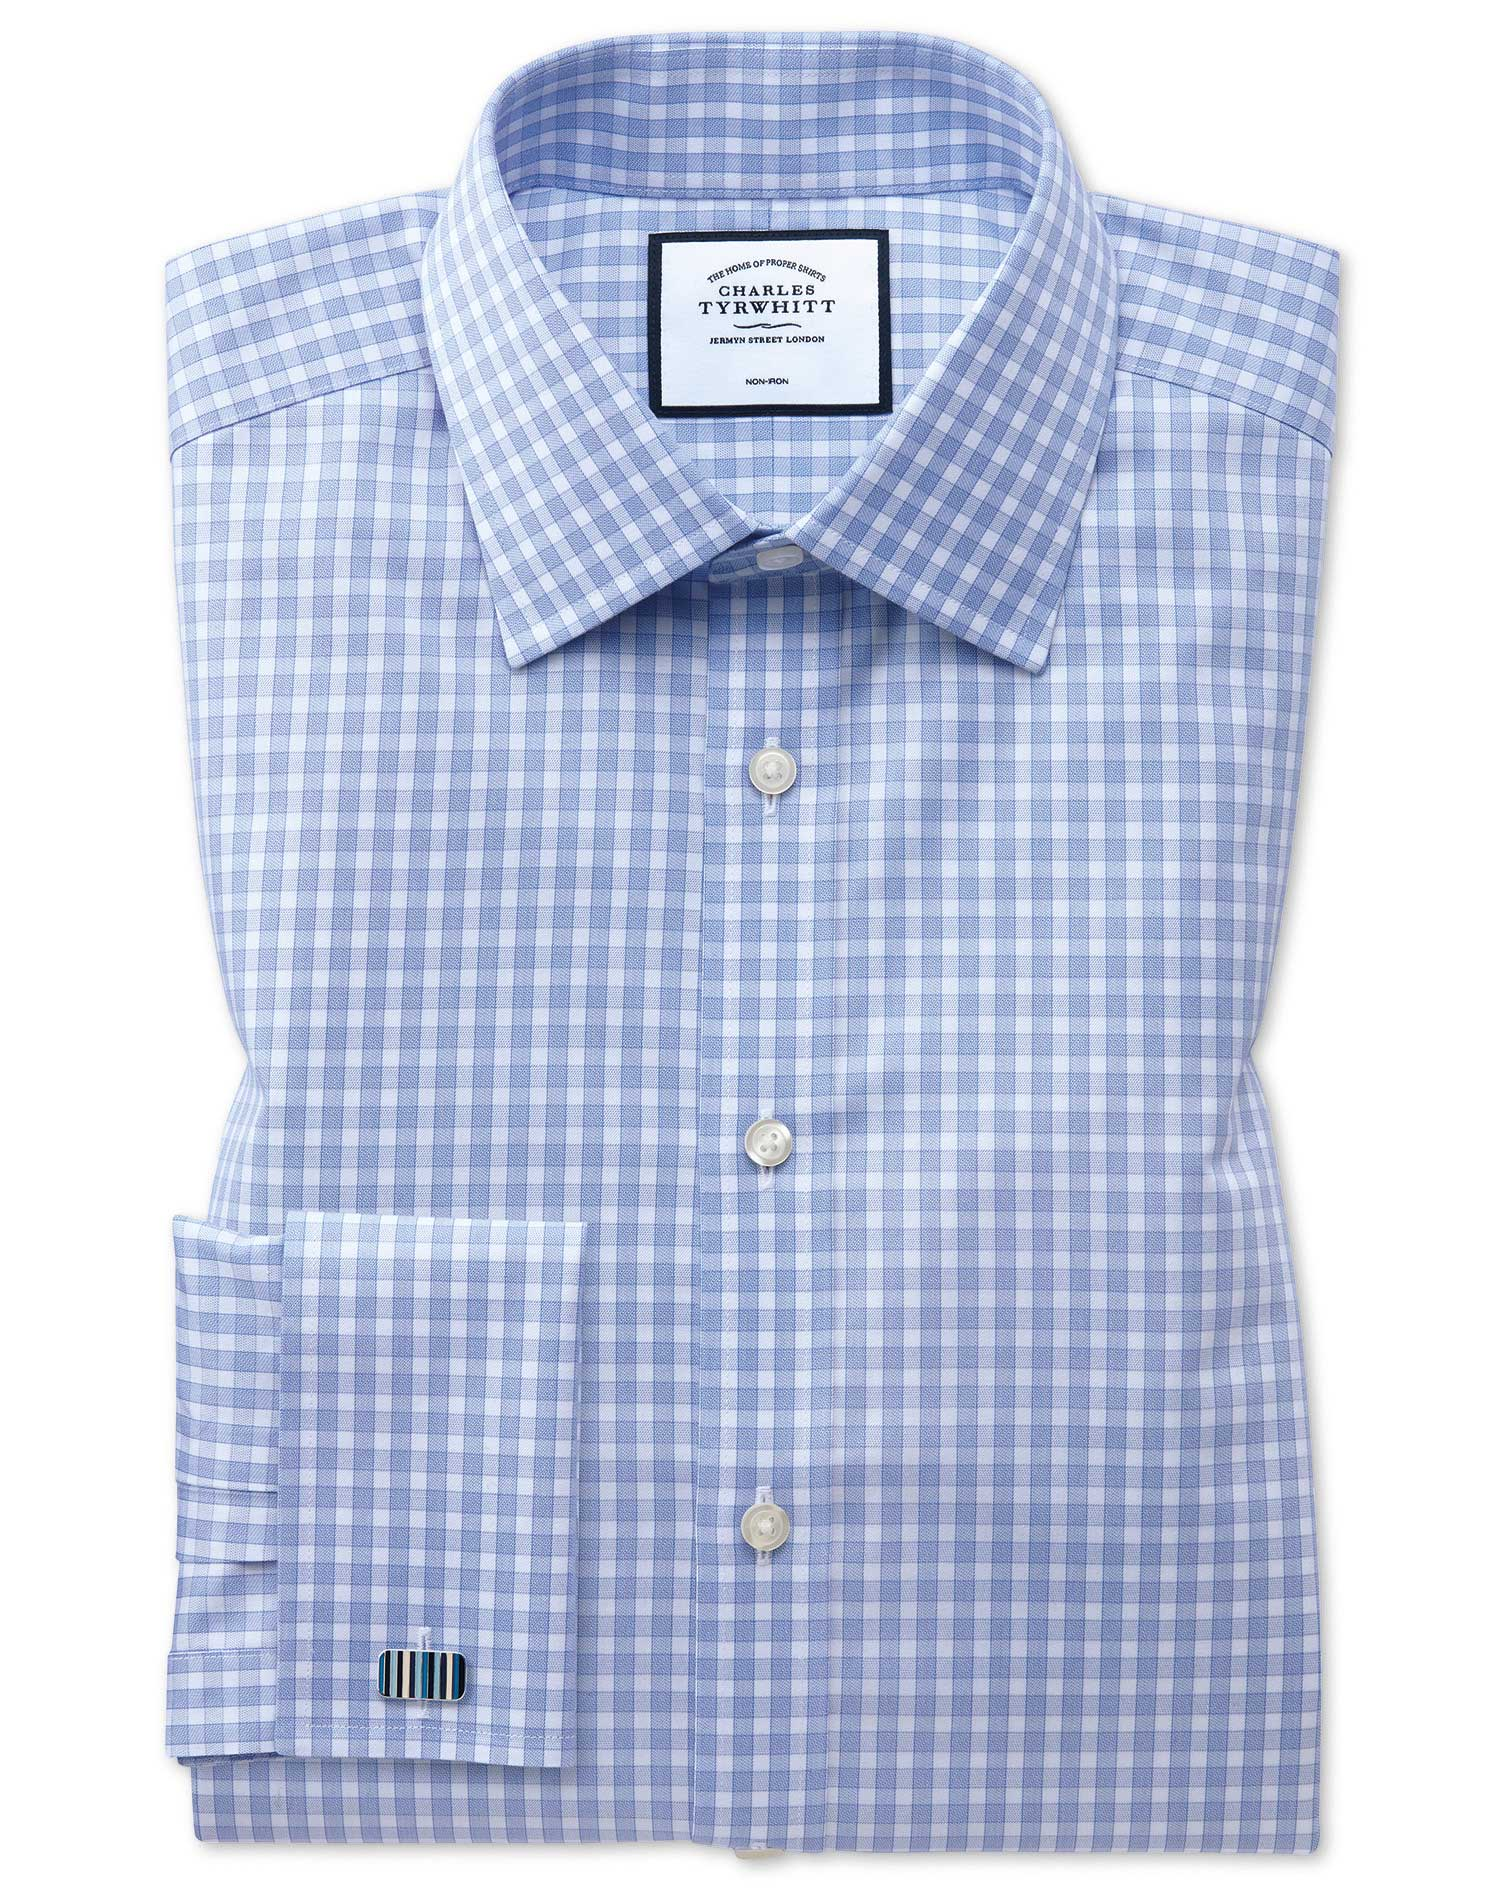 Classic Fit Non-Iron Twill Gingham Sky Blue Cotton Formal Shirt Double Cuff Size 17.5/36 by Charles